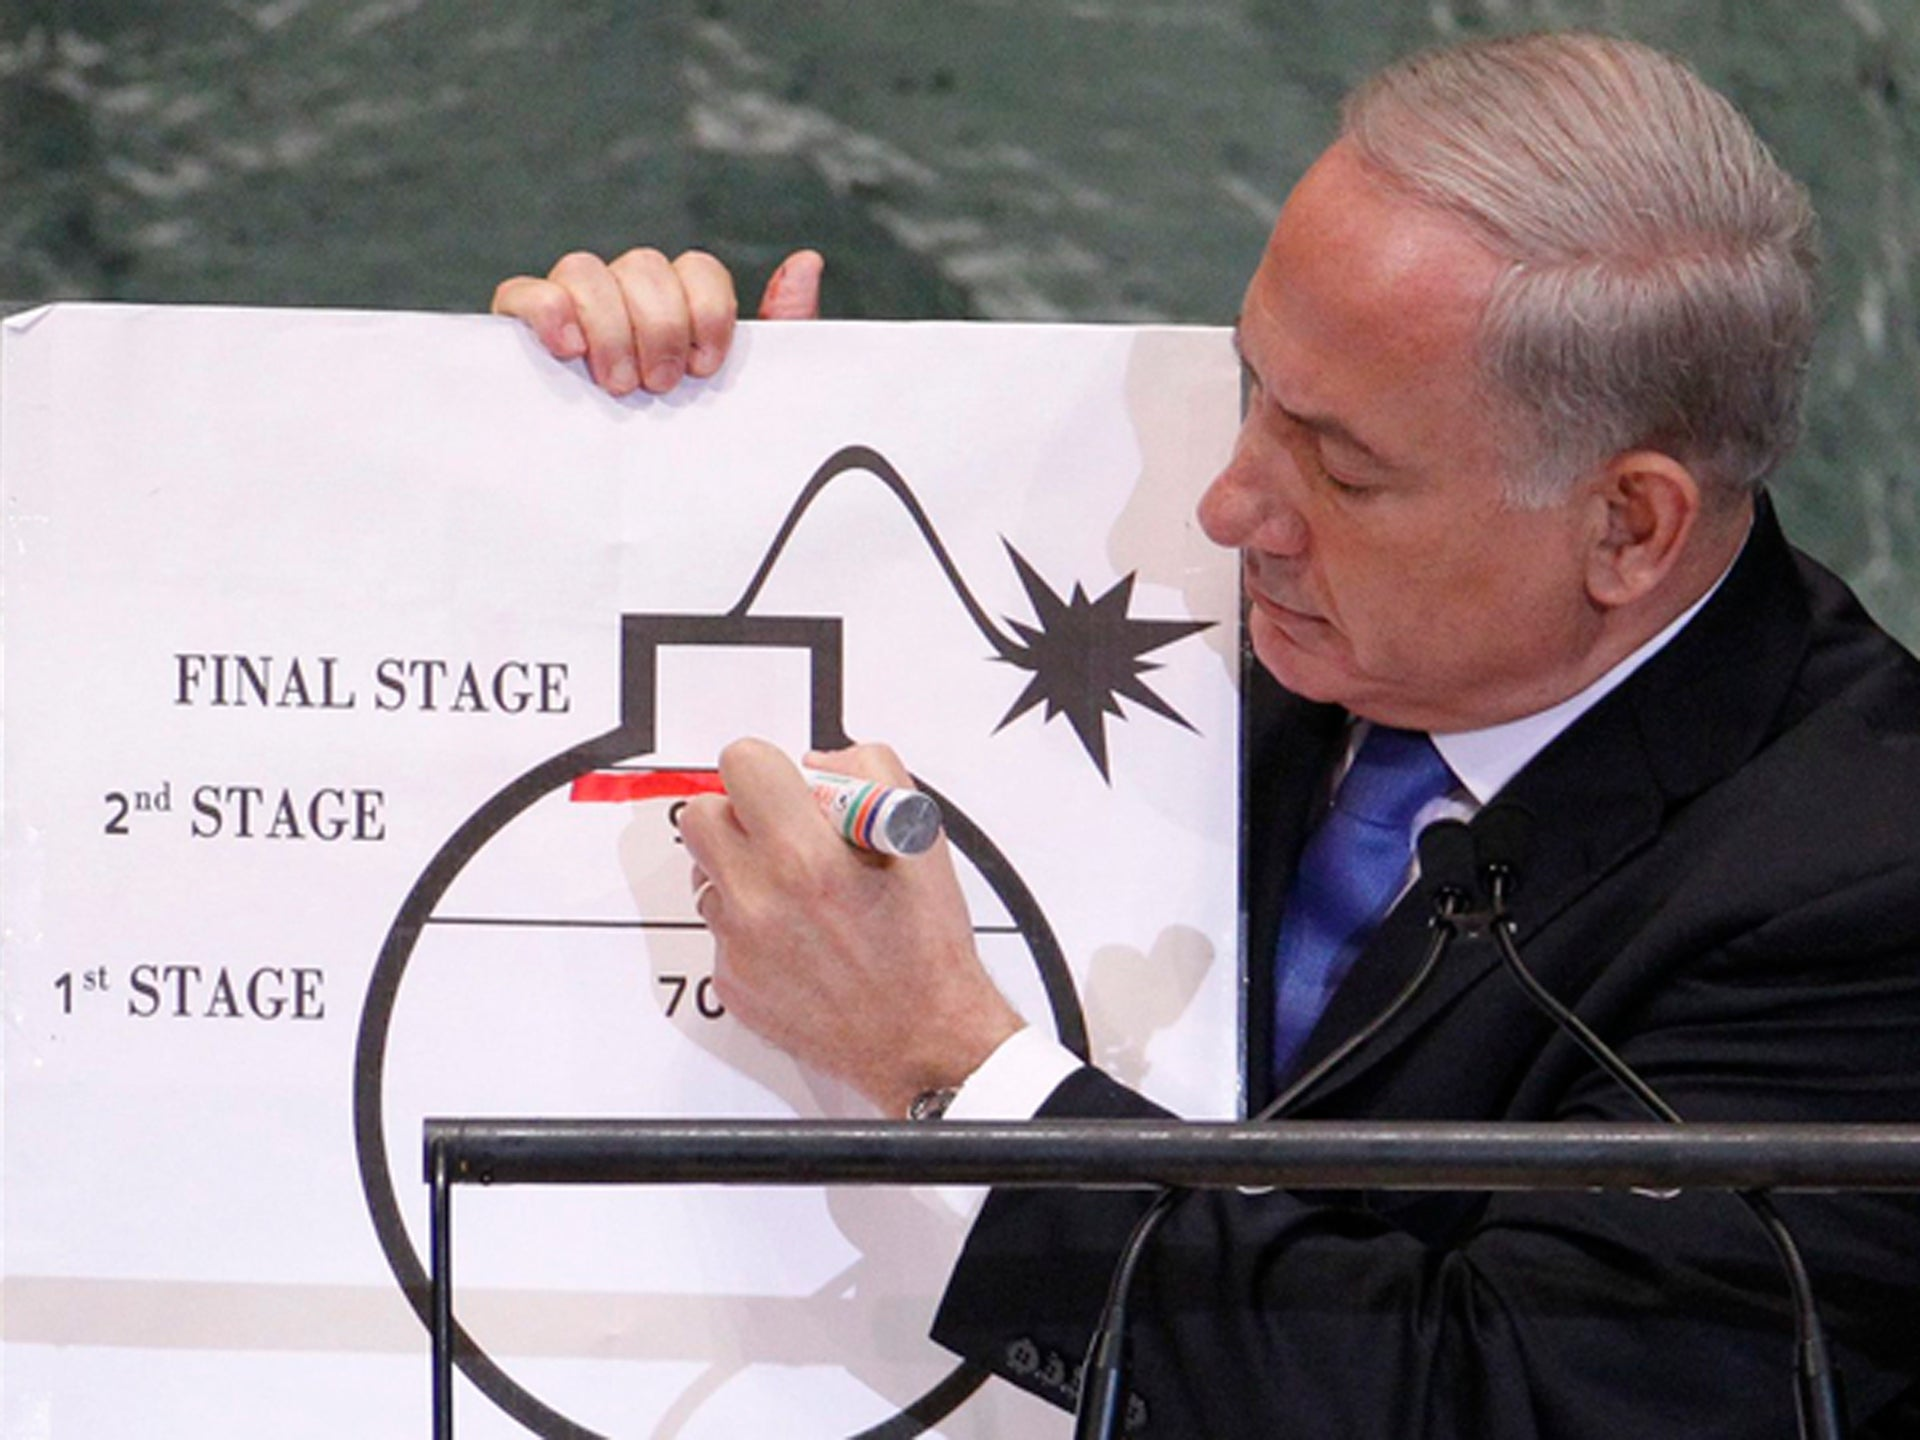 Prime Minister Netanyahu draws a red line on a graphic of a bomb at the UN General Assembly in September 2012.